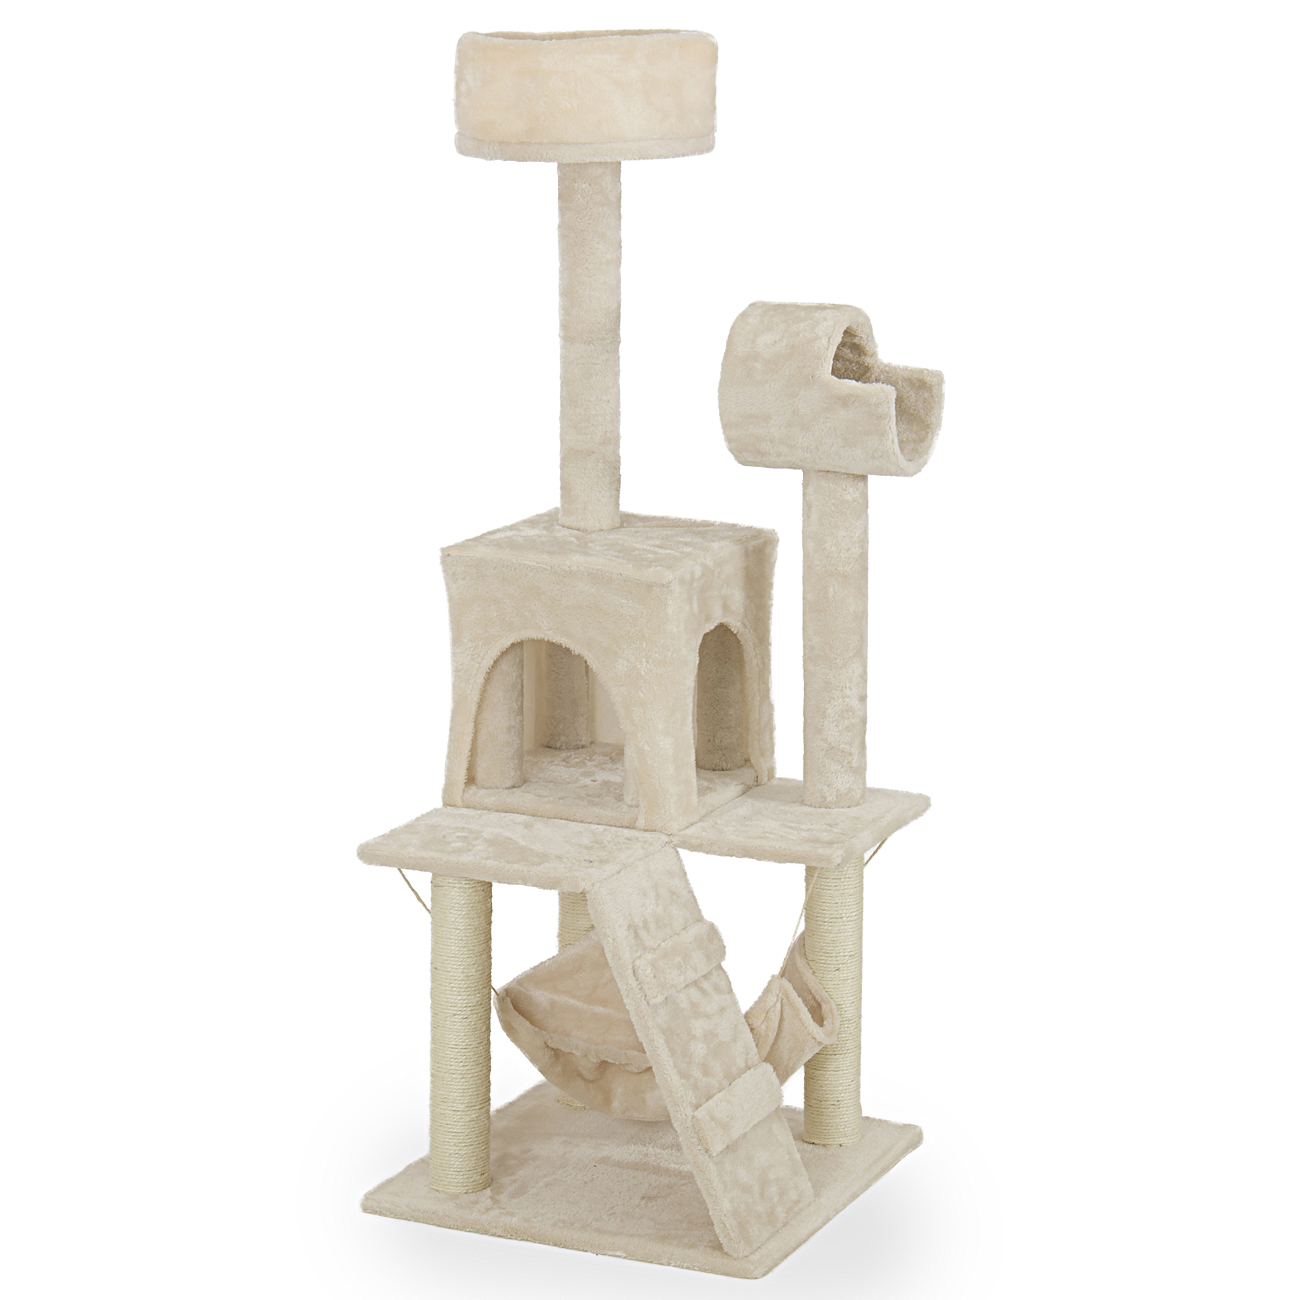 new 52 cat tree tower condo furniture scratch post kitty. Black Bedroom Furniture Sets. Home Design Ideas